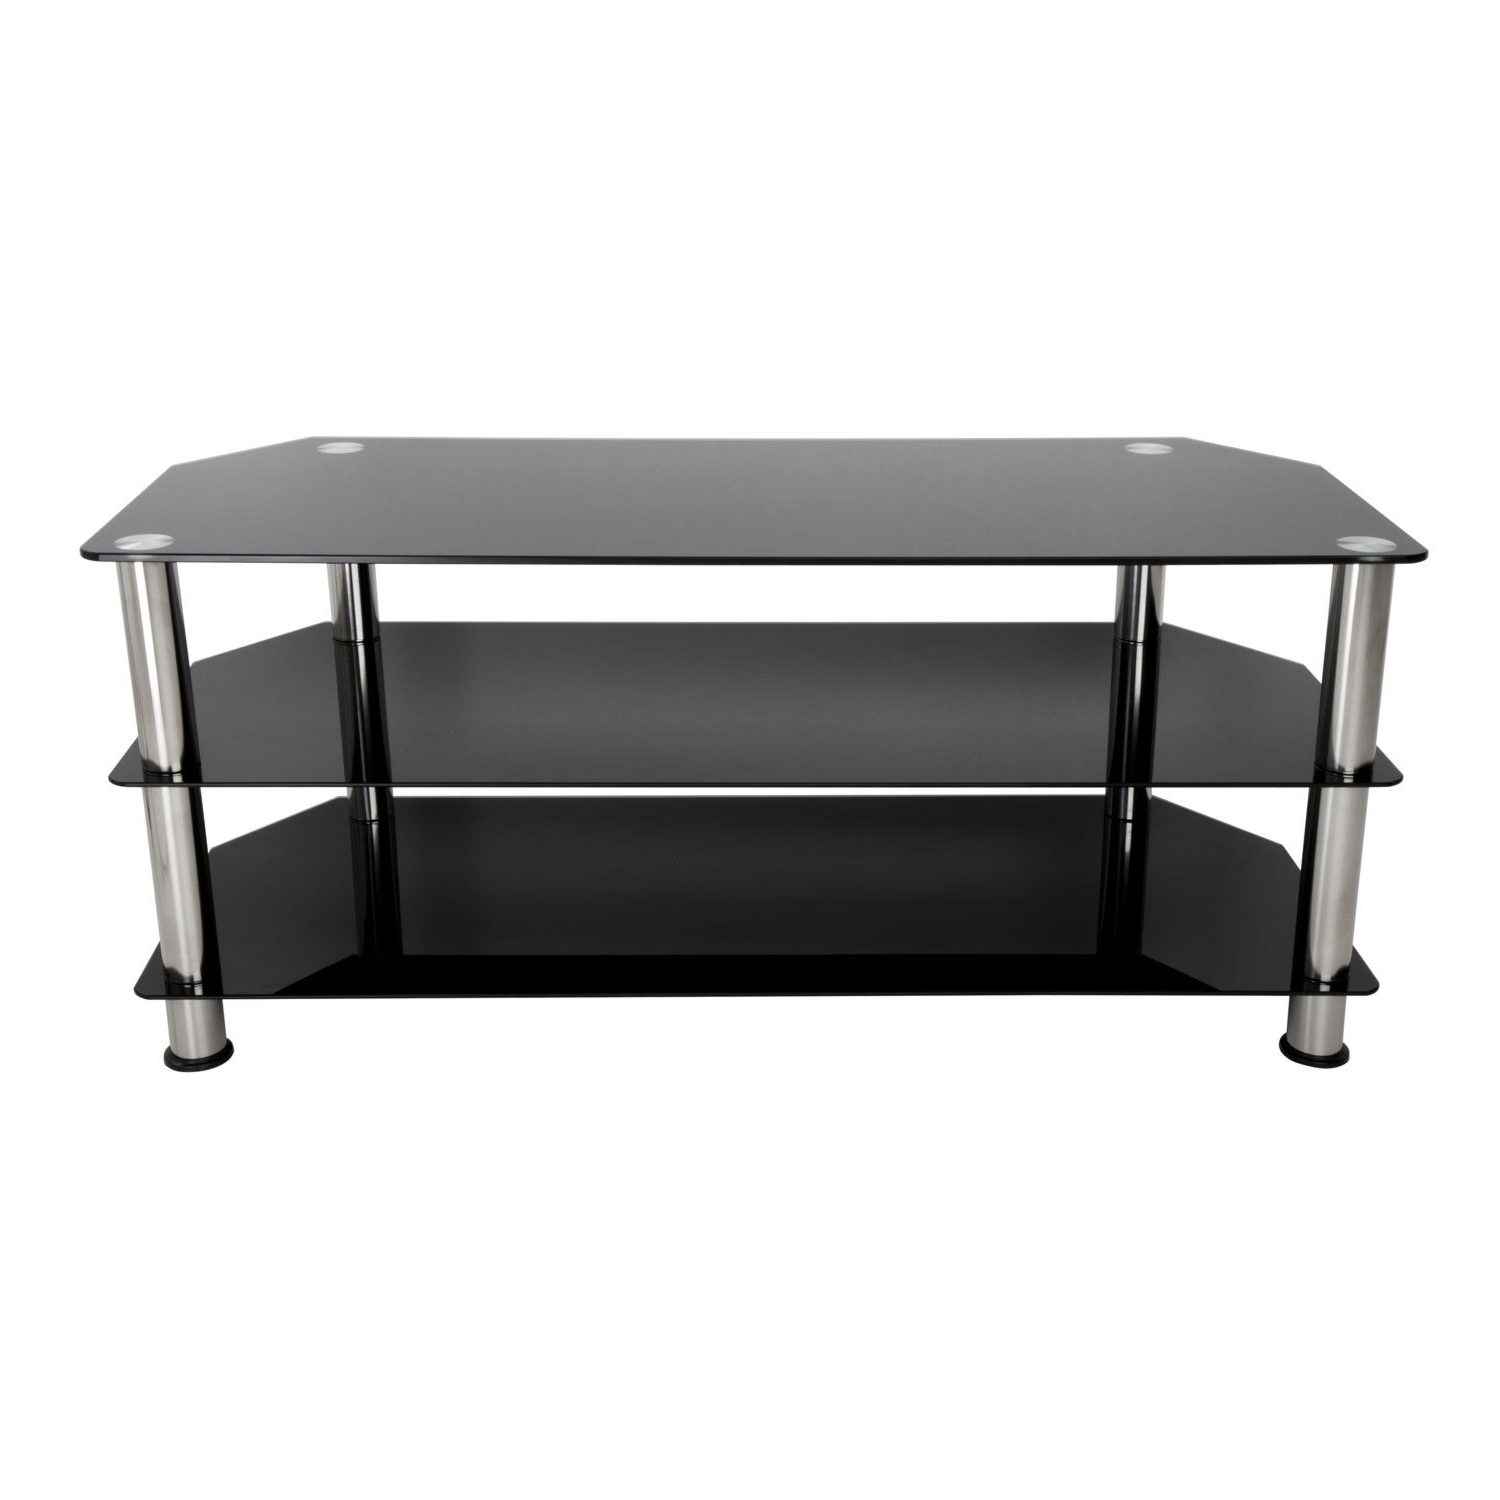 2017 Crown Tv Stand Pertaining To Black Glass Tv Stands (View 18 of 20)